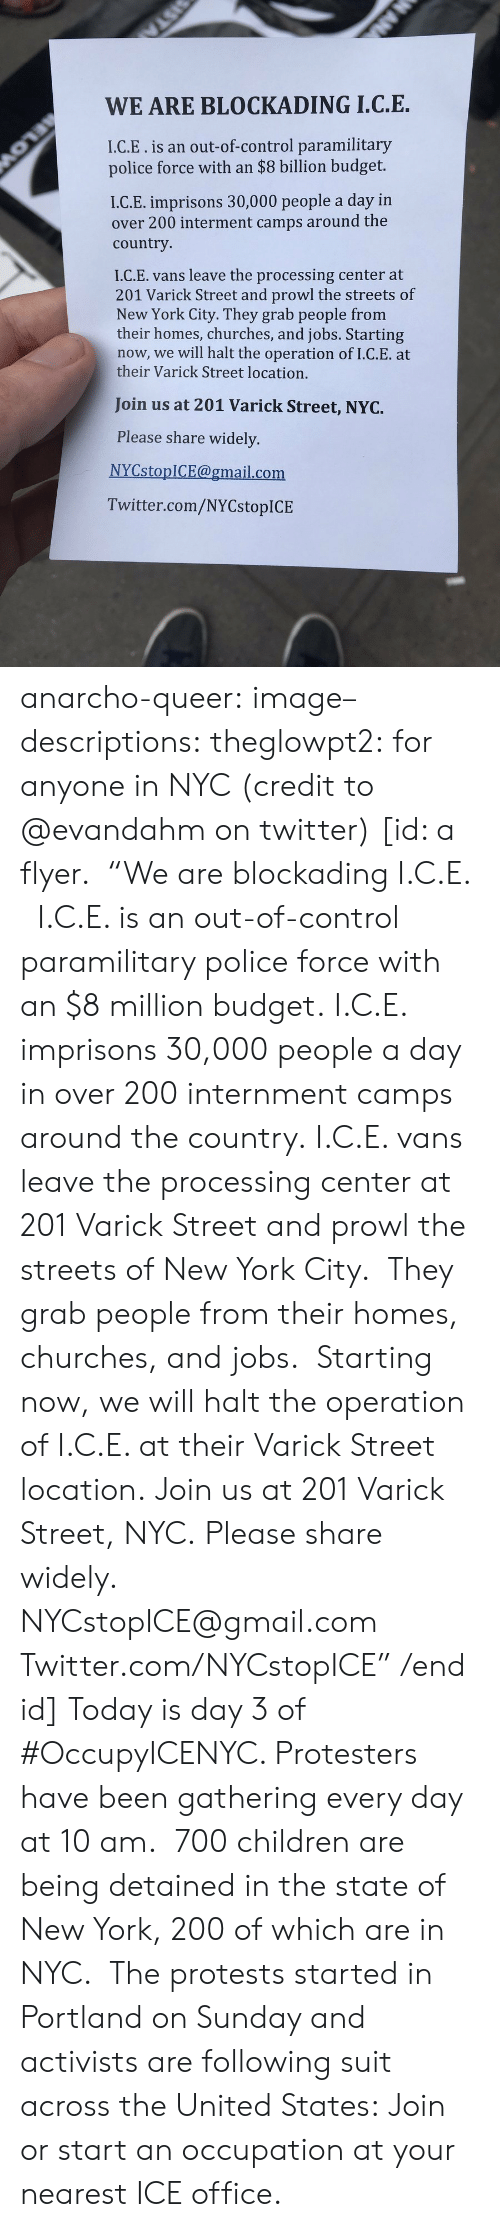 "Vans: WE ARE BLOCKADING I.C.E.  I.C.E.is an out-of-control paramilitary  police force with an $8 billion budget.  I.C.E. imprisons 30,000 people a day in  over 200 interment camps around the  country  I.C.E. vans leave the processing center at  201 Varick Street and prowl the streets of  New York City. They grab people from  their homes, churches, and jobs. Starting  now, we will halt the operation of I.C.E. at  their Varick Street location.  Join us at 201 Varick Street, NYC.  Please share widely.  NYCstopICE@gmail.com  Twitter.com/NYCstopICE anarcho-queer: image–descriptions:  theglowpt2: for anyone in NYC (credit to @evandahm on twitter) [id: a flyer.  ""We are blockading I.C.E.   I.C.E. is an out-of-control paramilitary police force with an $8 million budget. I.C.E. imprisons 30,000 people a day in over 200 internment camps around the country. I.C.E. vans leave the processing center at 201 Varick Street and prowl the streets of New York City.  They grab people from their homes, churches, and jobs.  Starting now, we will halt the operation of I.C.E. at their Varick Street location. Join us at 201 Varick Street, NYC. Please share widely. NYCstopICE@gmail.com Twitter.com/NYCstopICE"" /end id]  Today is day 3 of #OccupyICENYC. Protesters have been gathering every day at 10 am.  700 children are being detained in the state of New York, 200 of which are in NYC.  The protests started in Portland on Sunday and activists are following suit across the United States: Join or start an occupation at your nearest ICE office."